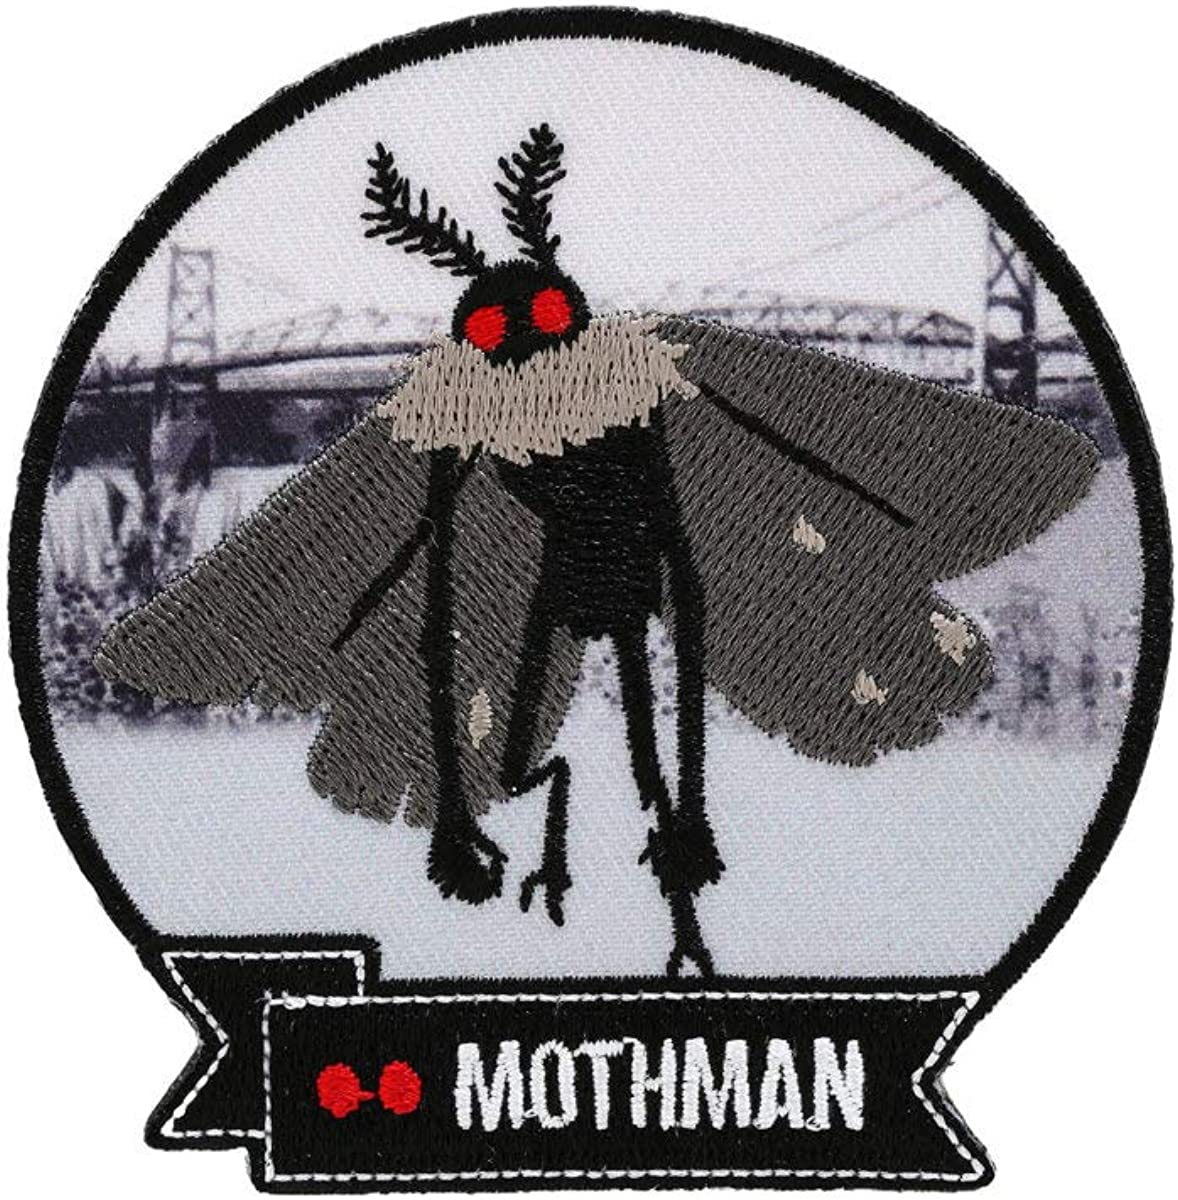 Cryptid Style Mothman Patch High Quality Shiny Iron on patch.